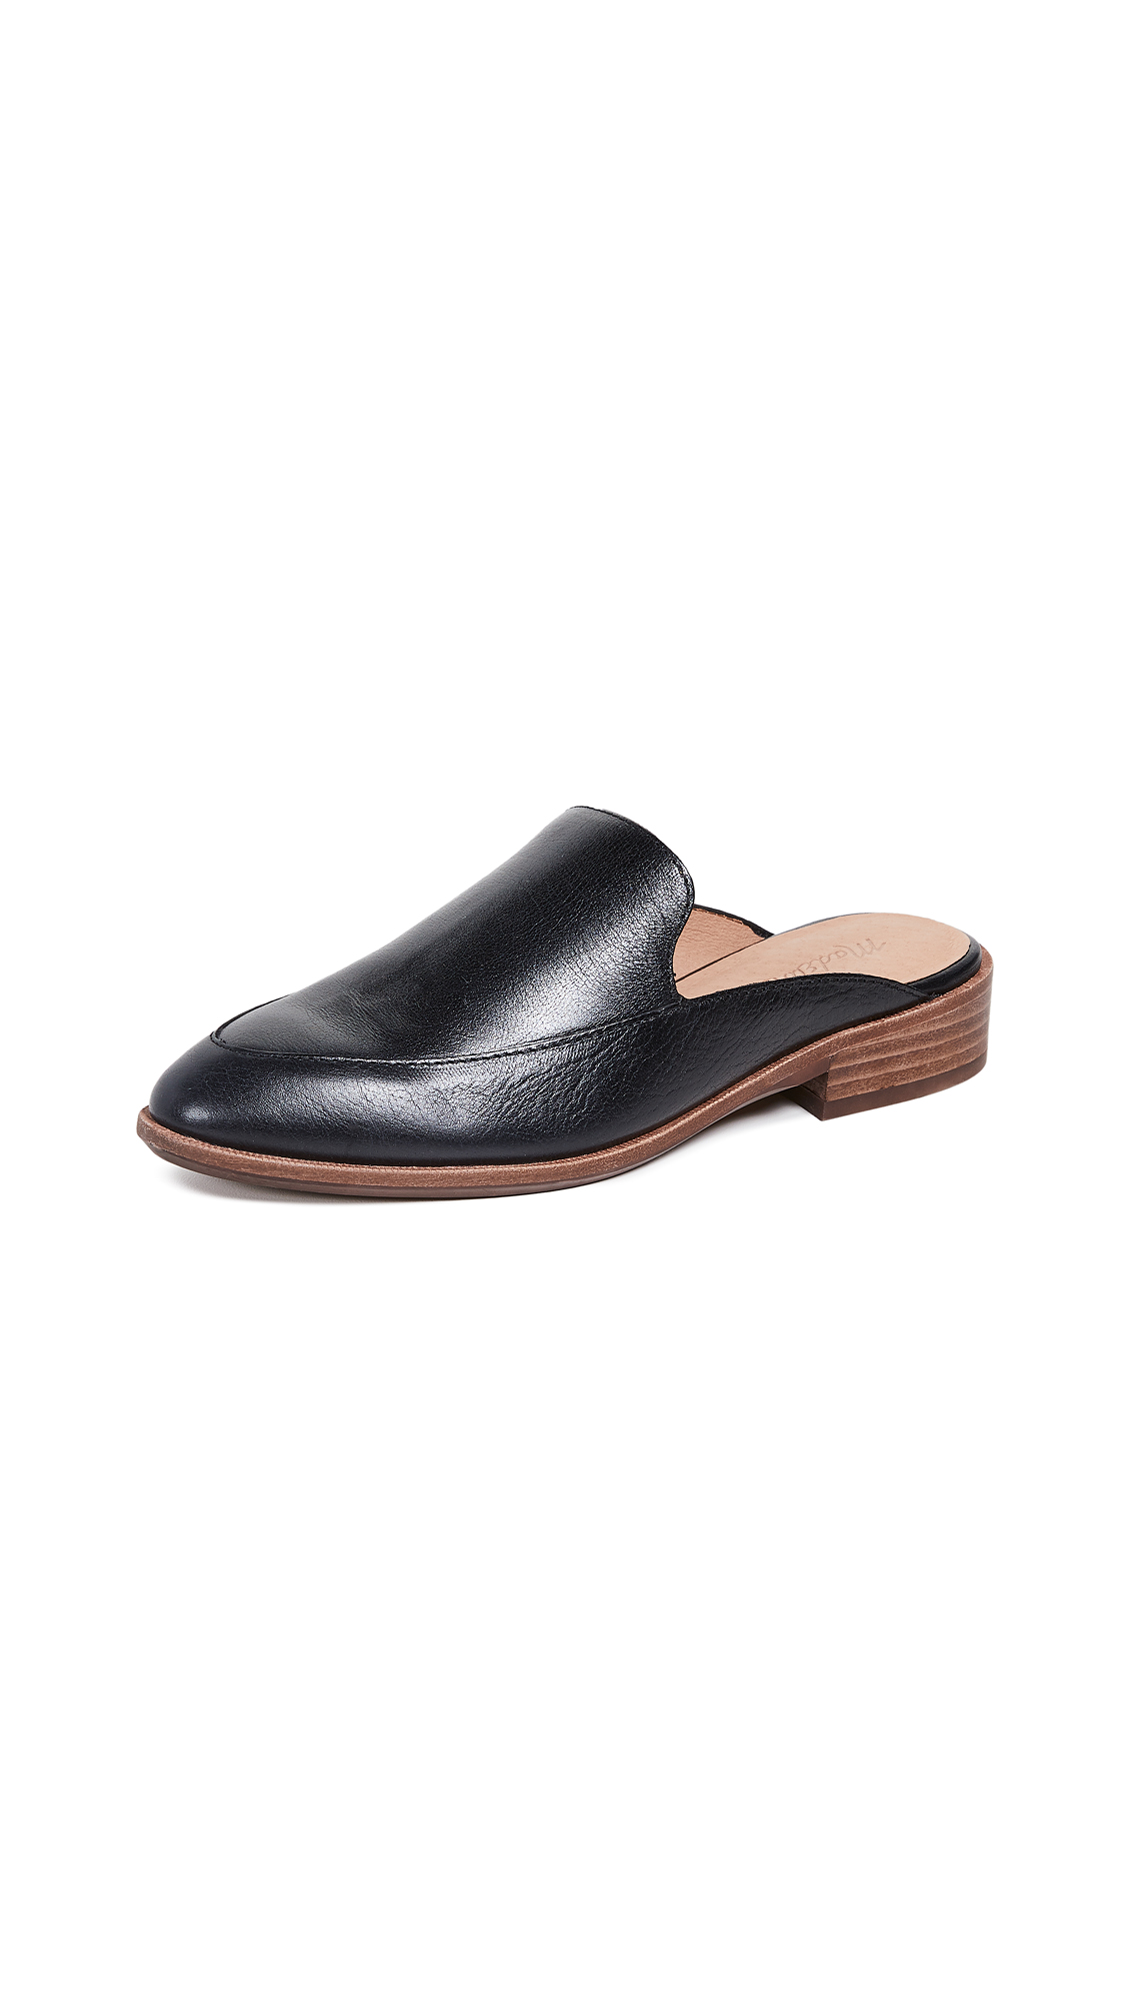 Buy Madewell Frances Loafer Mules online, shop Madewell